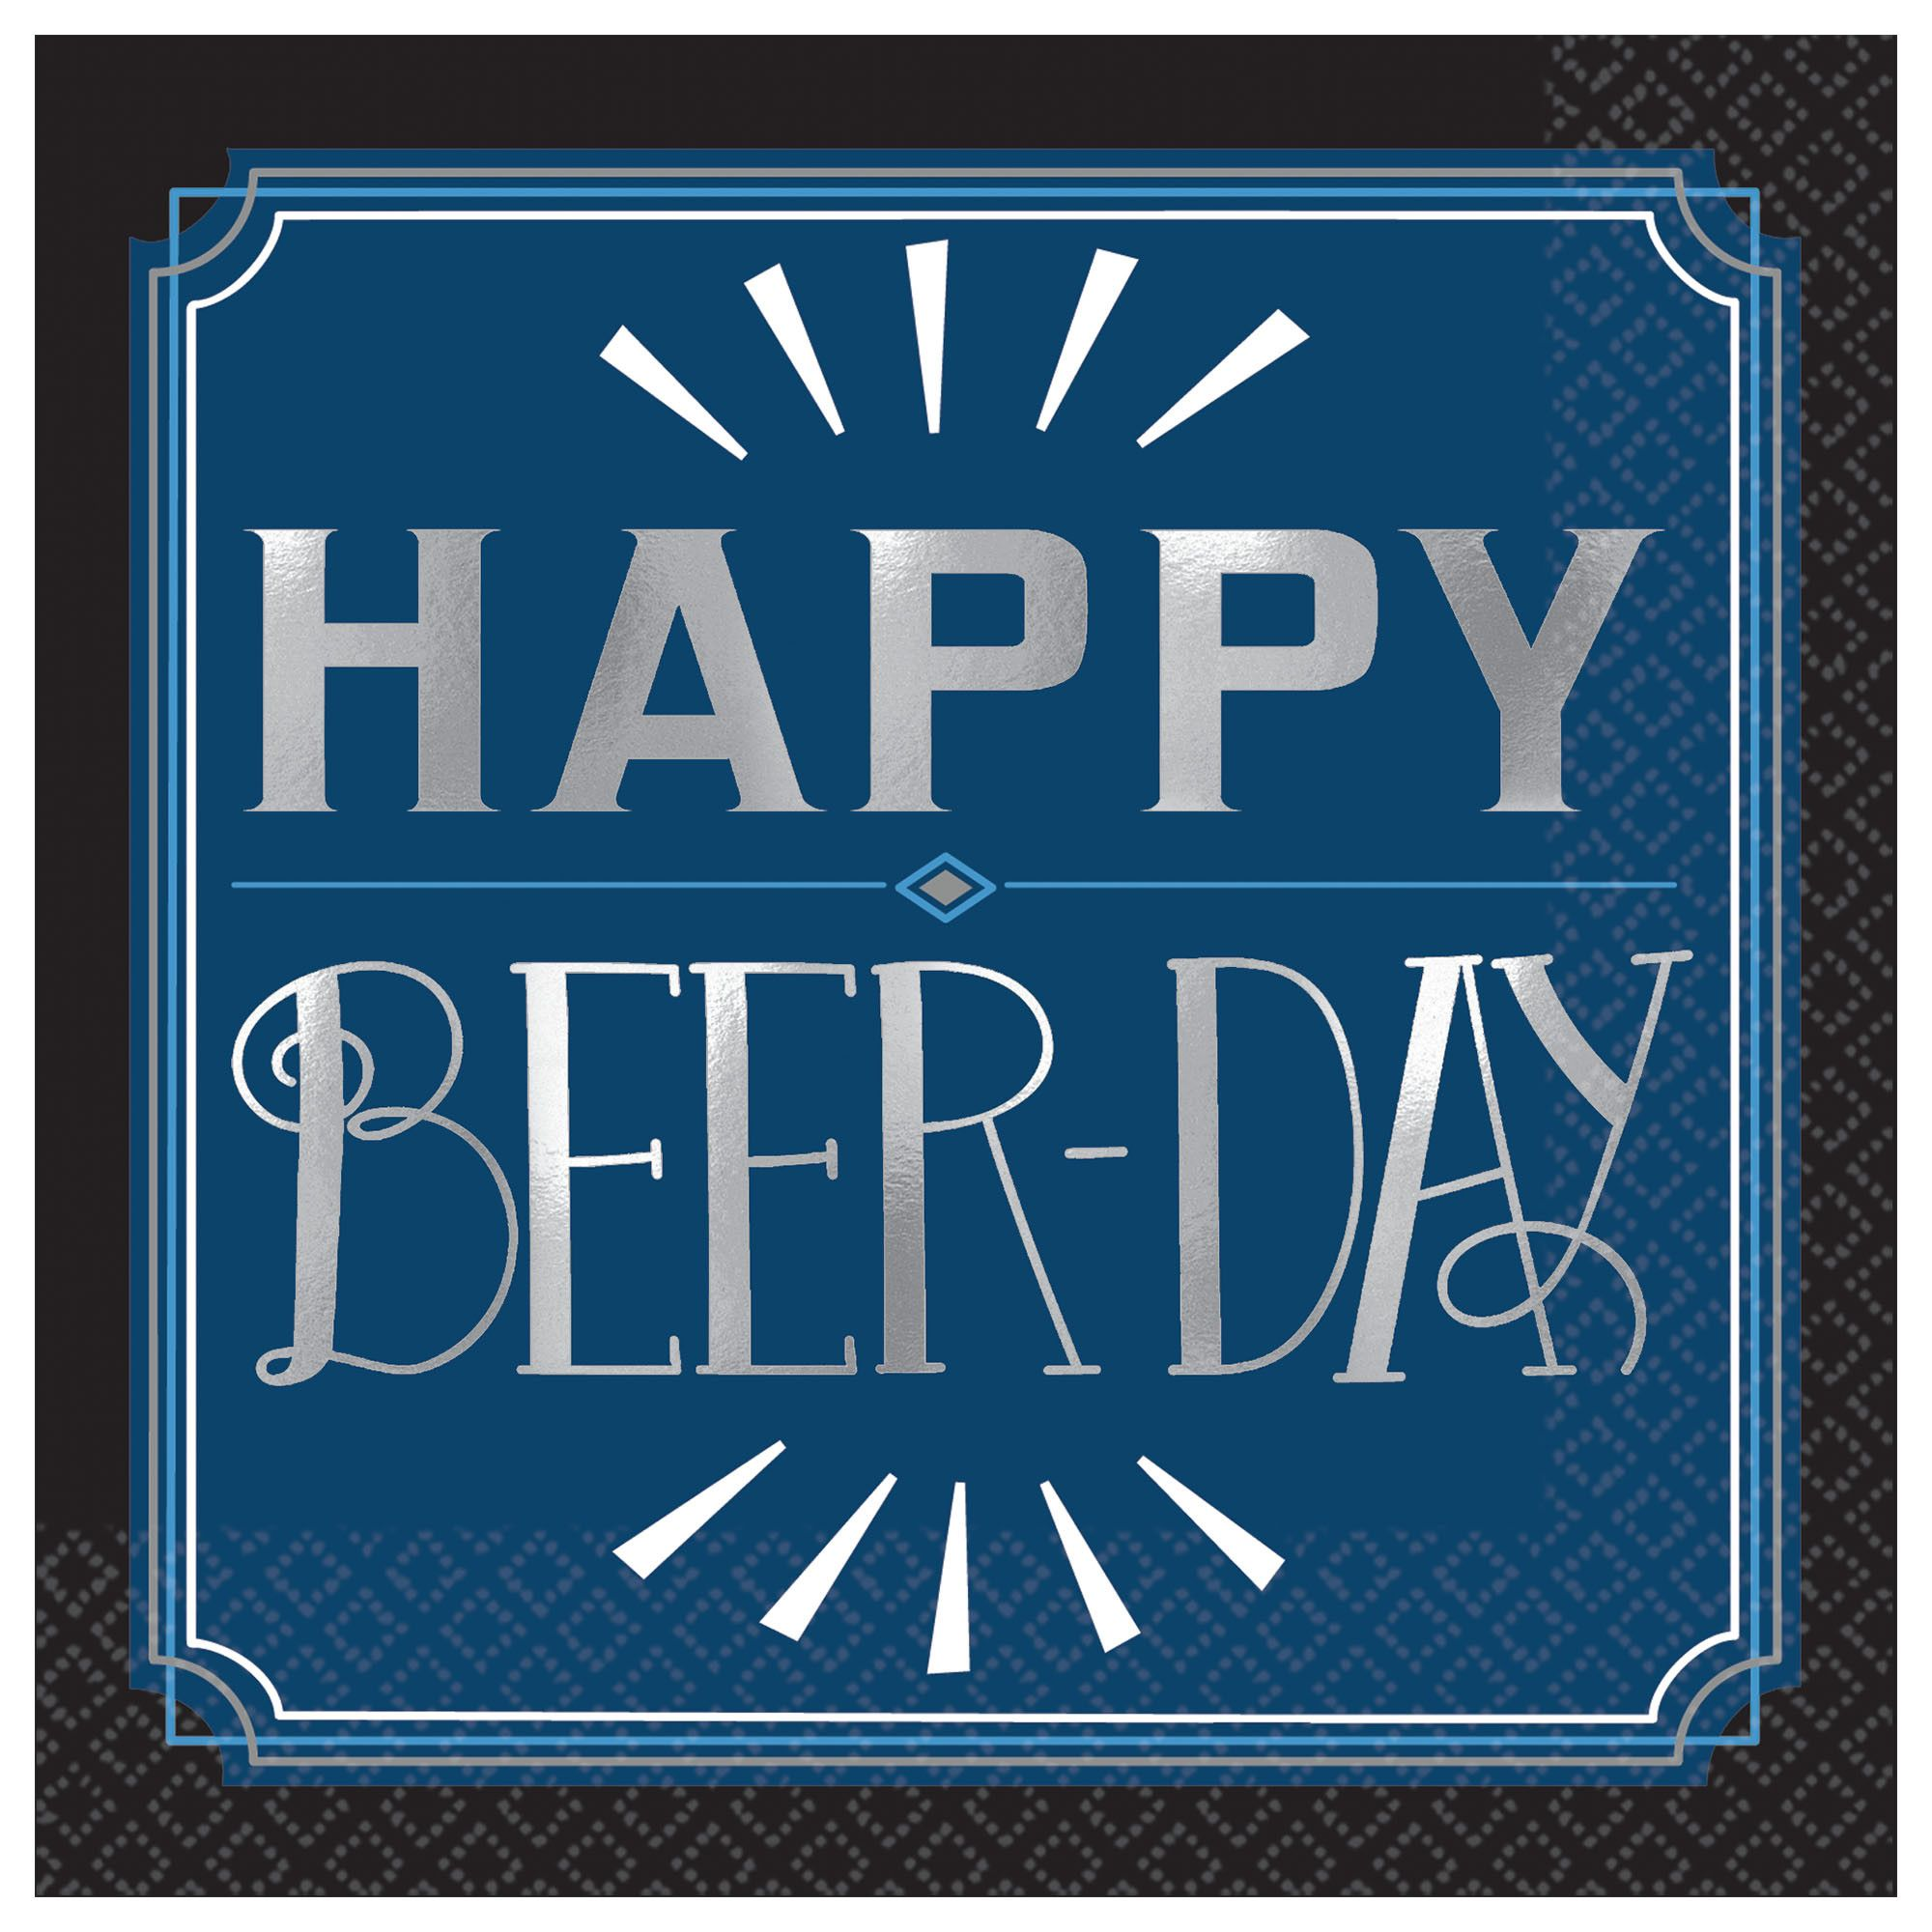 Happy Bday Manly Beerday BN